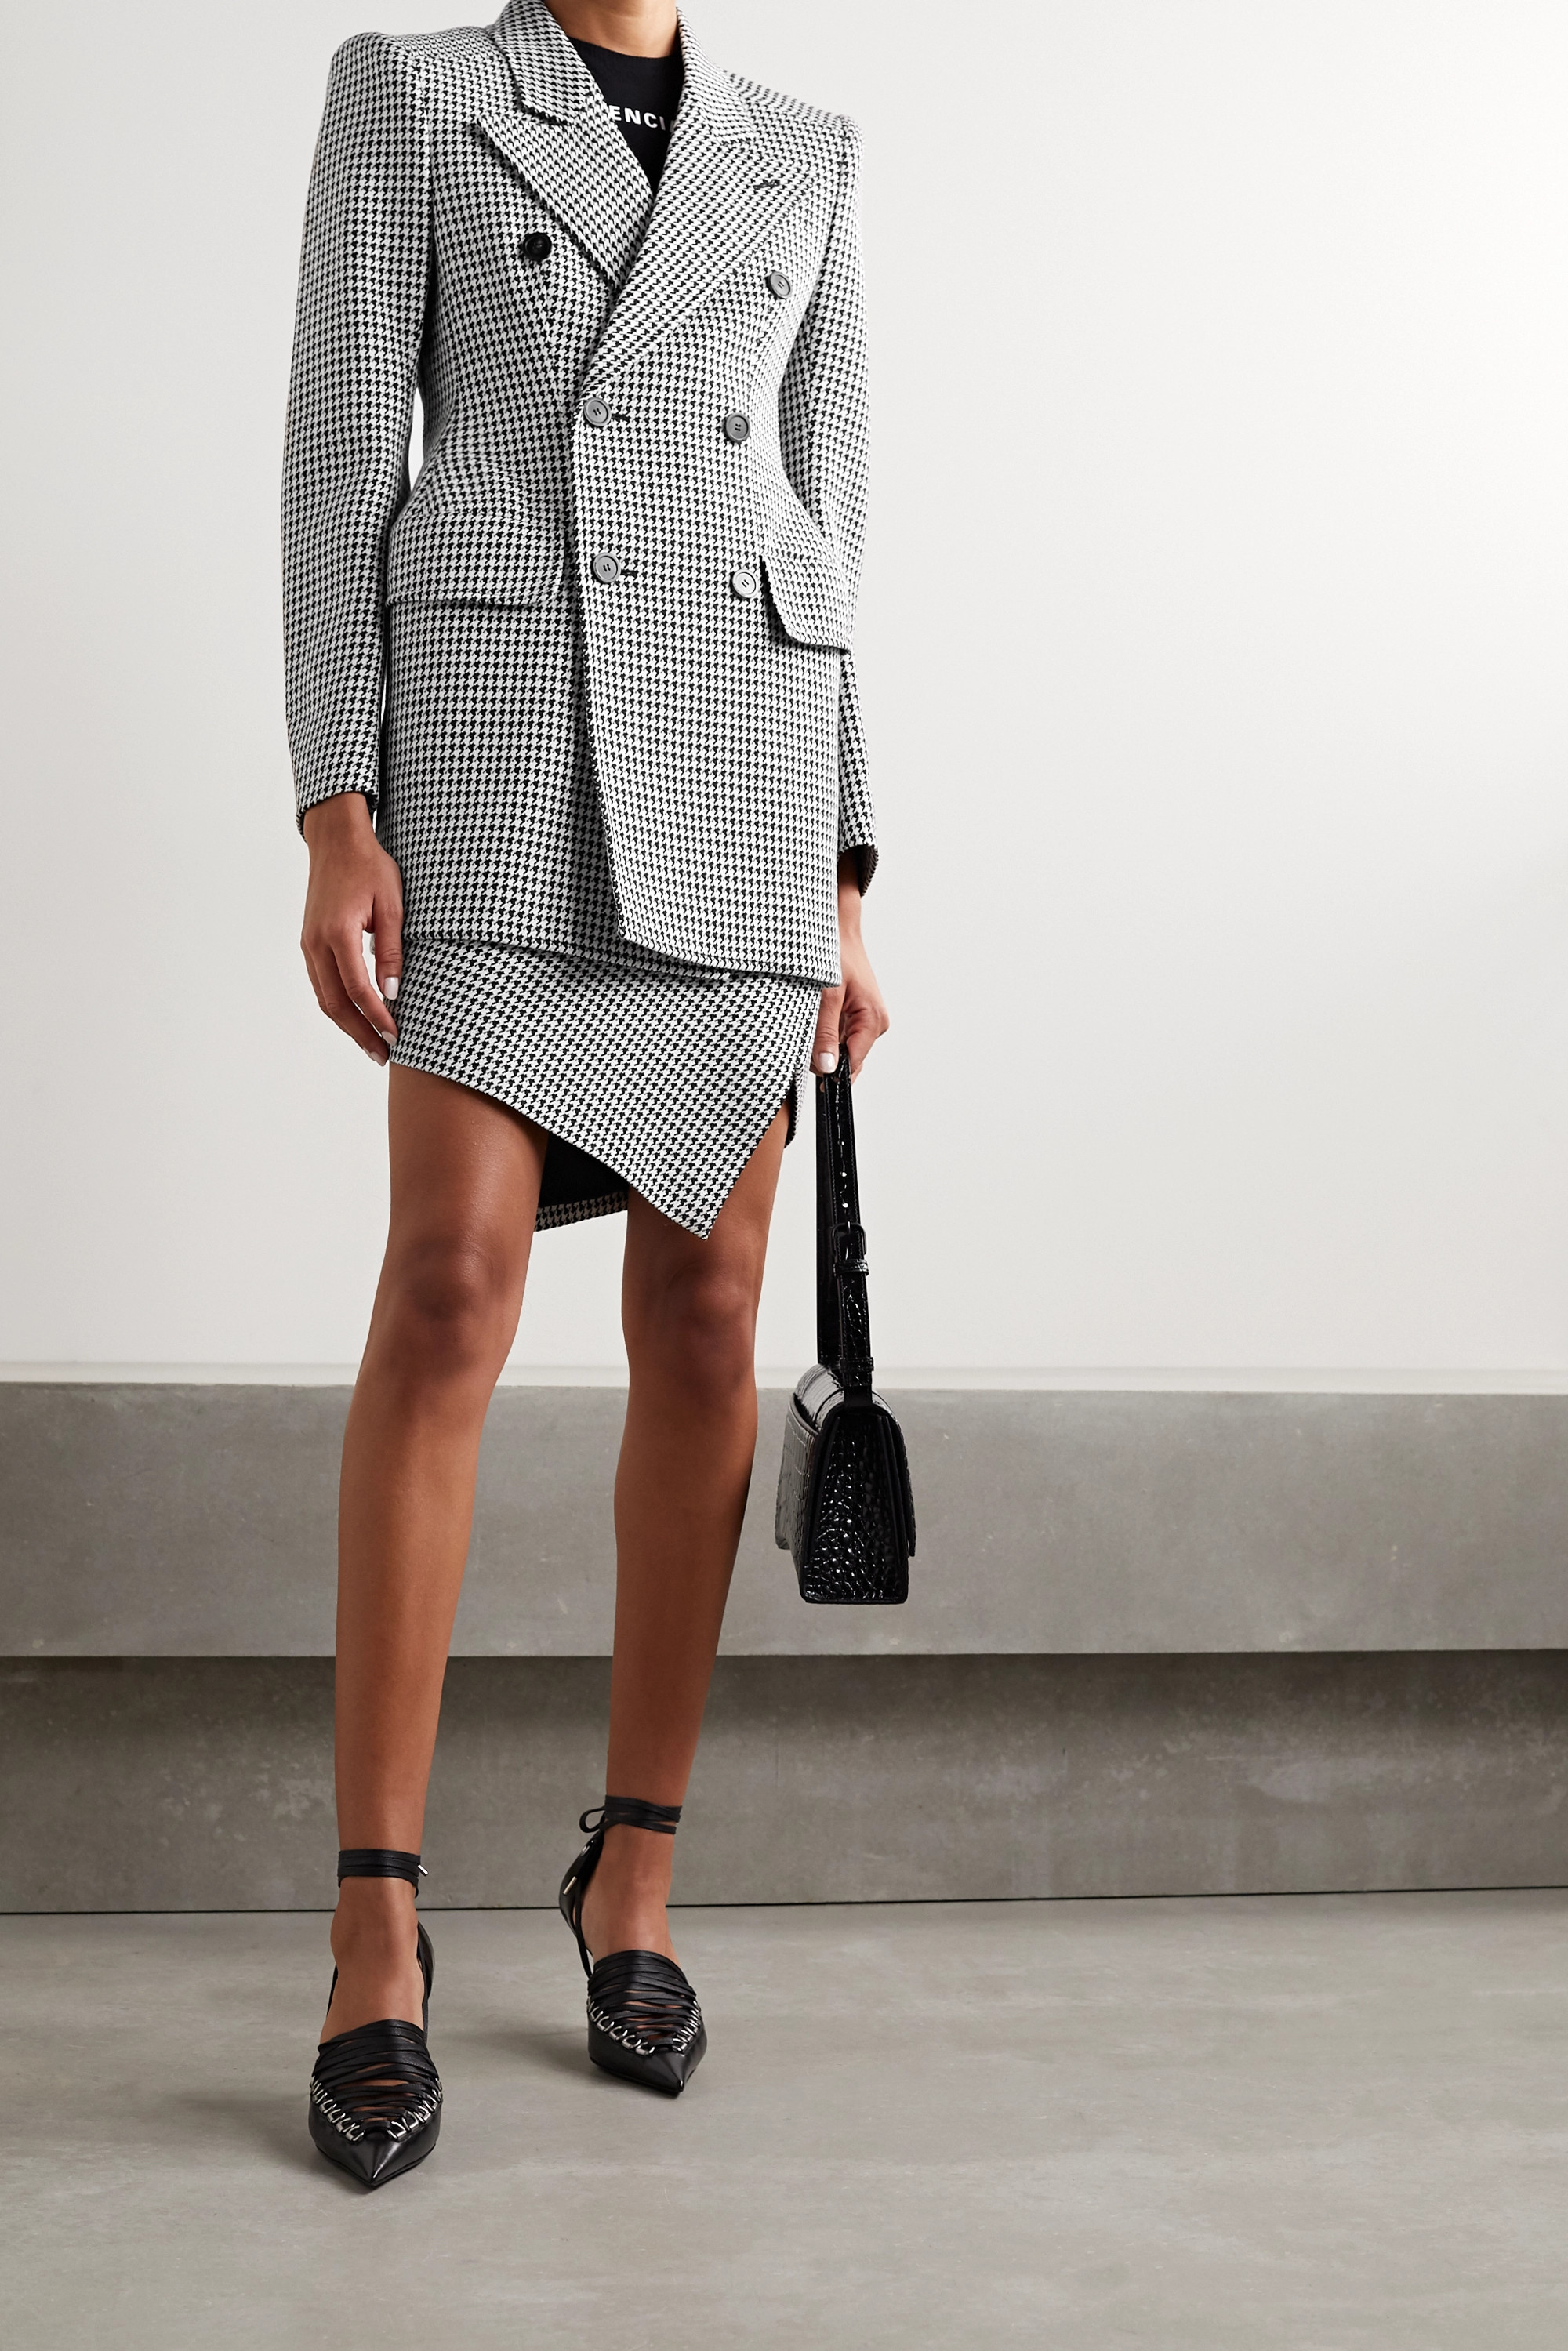 Balenciaga Hourglass double-breasted houndstooth wool-blend blazer